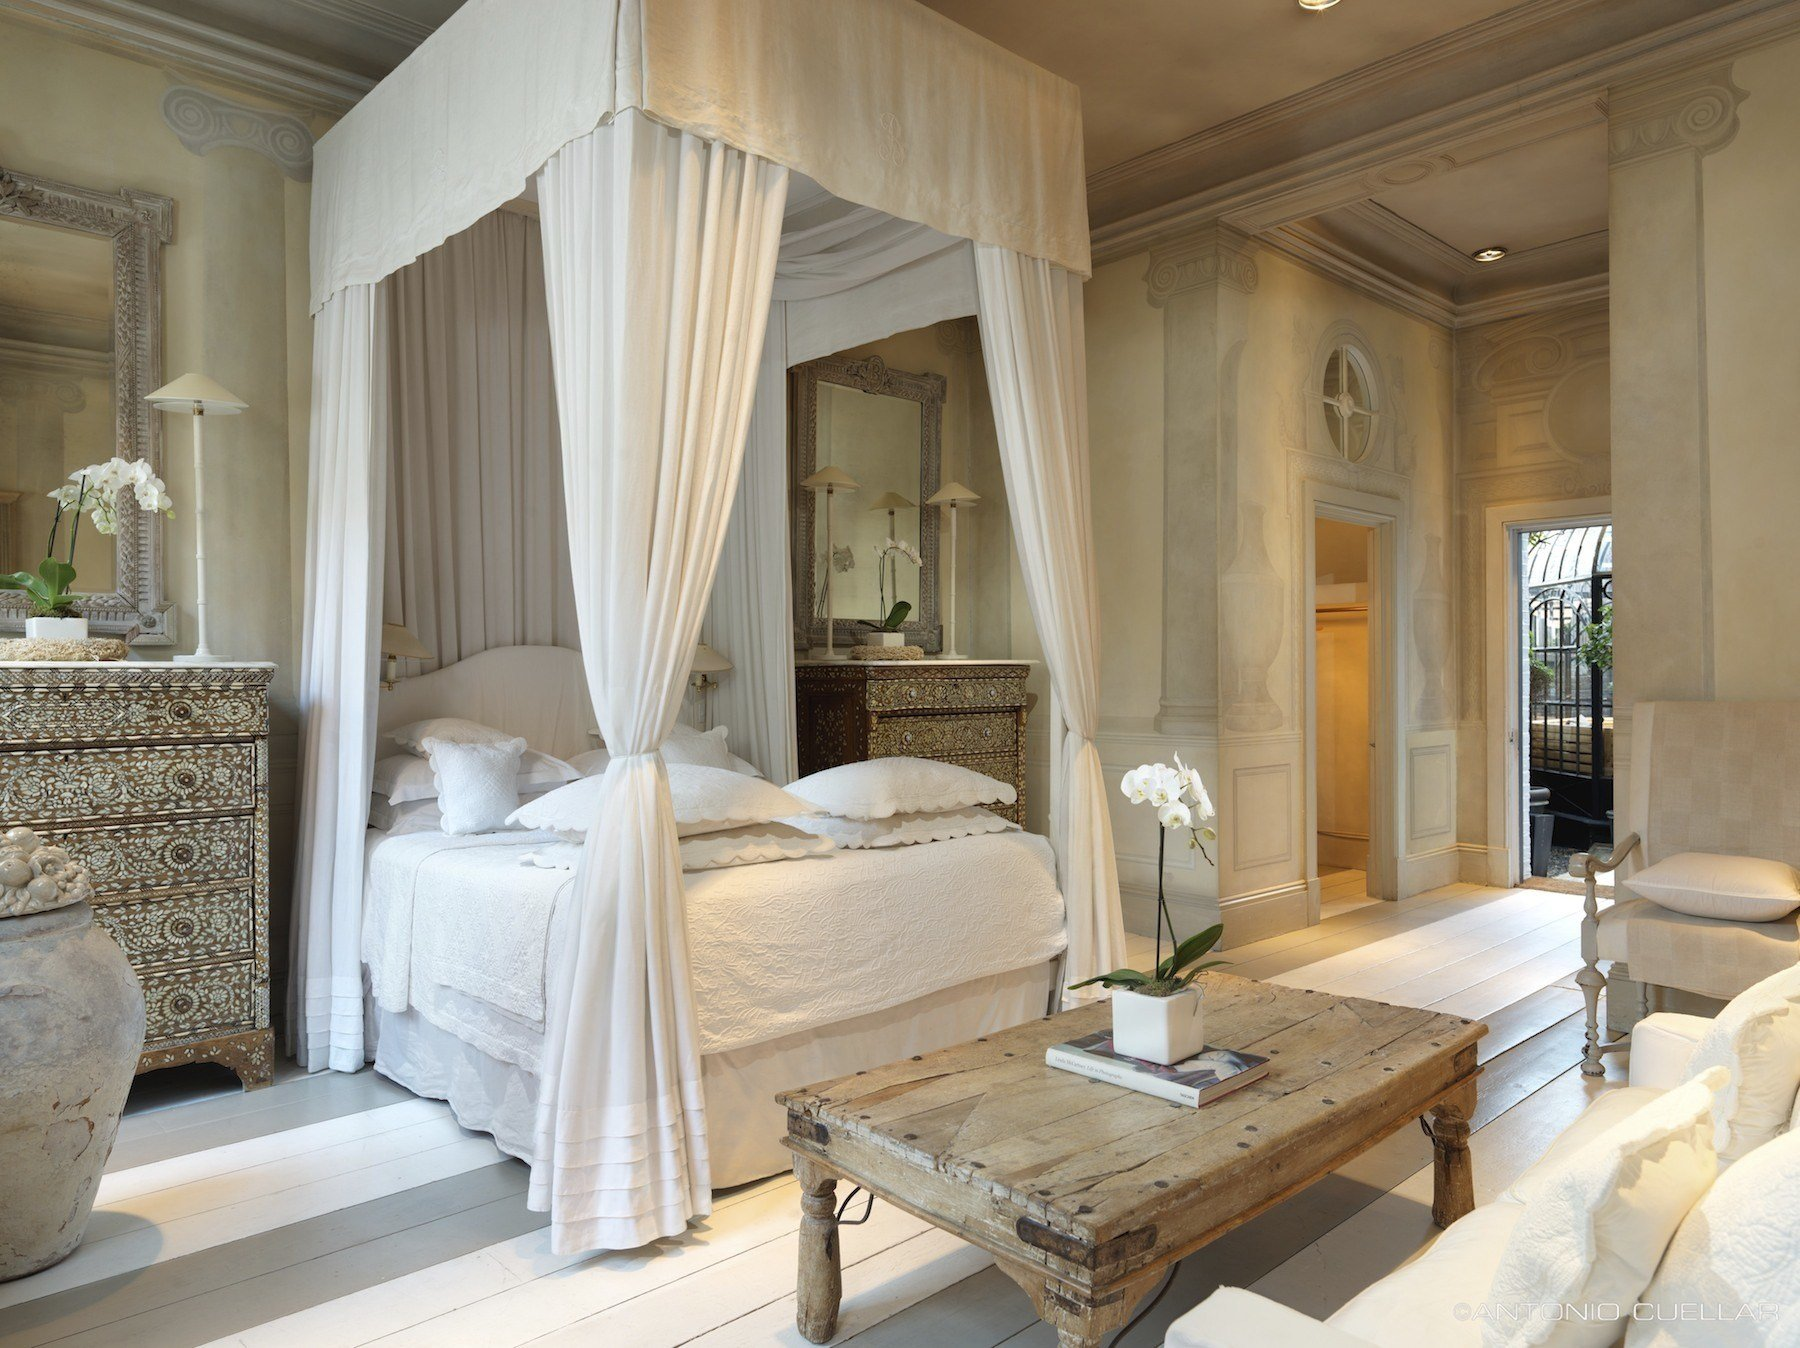 Best Romantic Hotels In London – Best Boutique And Luxury With Pictures